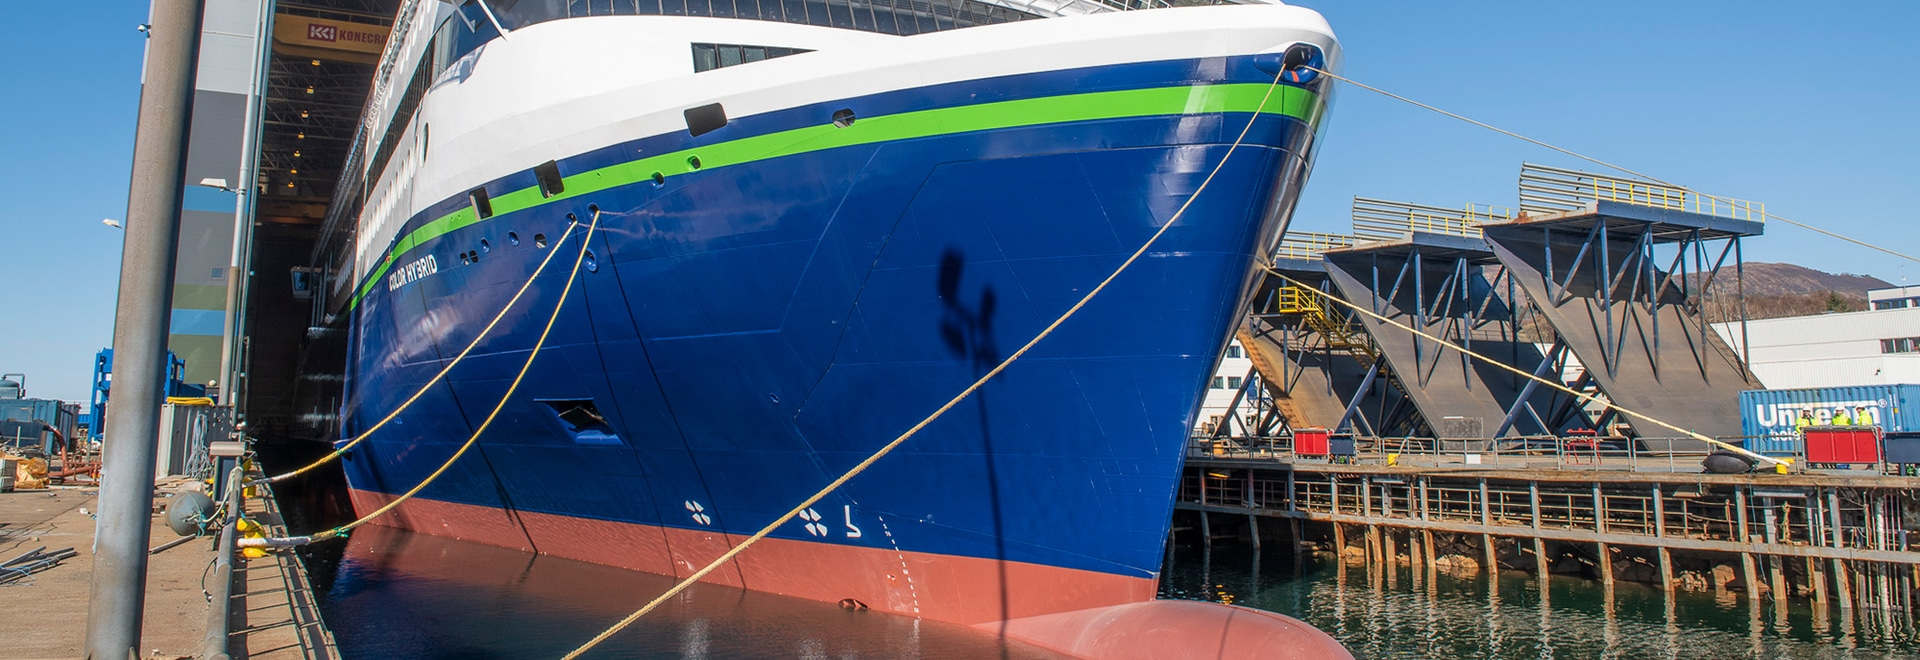 Plug-in hybrid vessel Color Hybrid launched by Ulstein